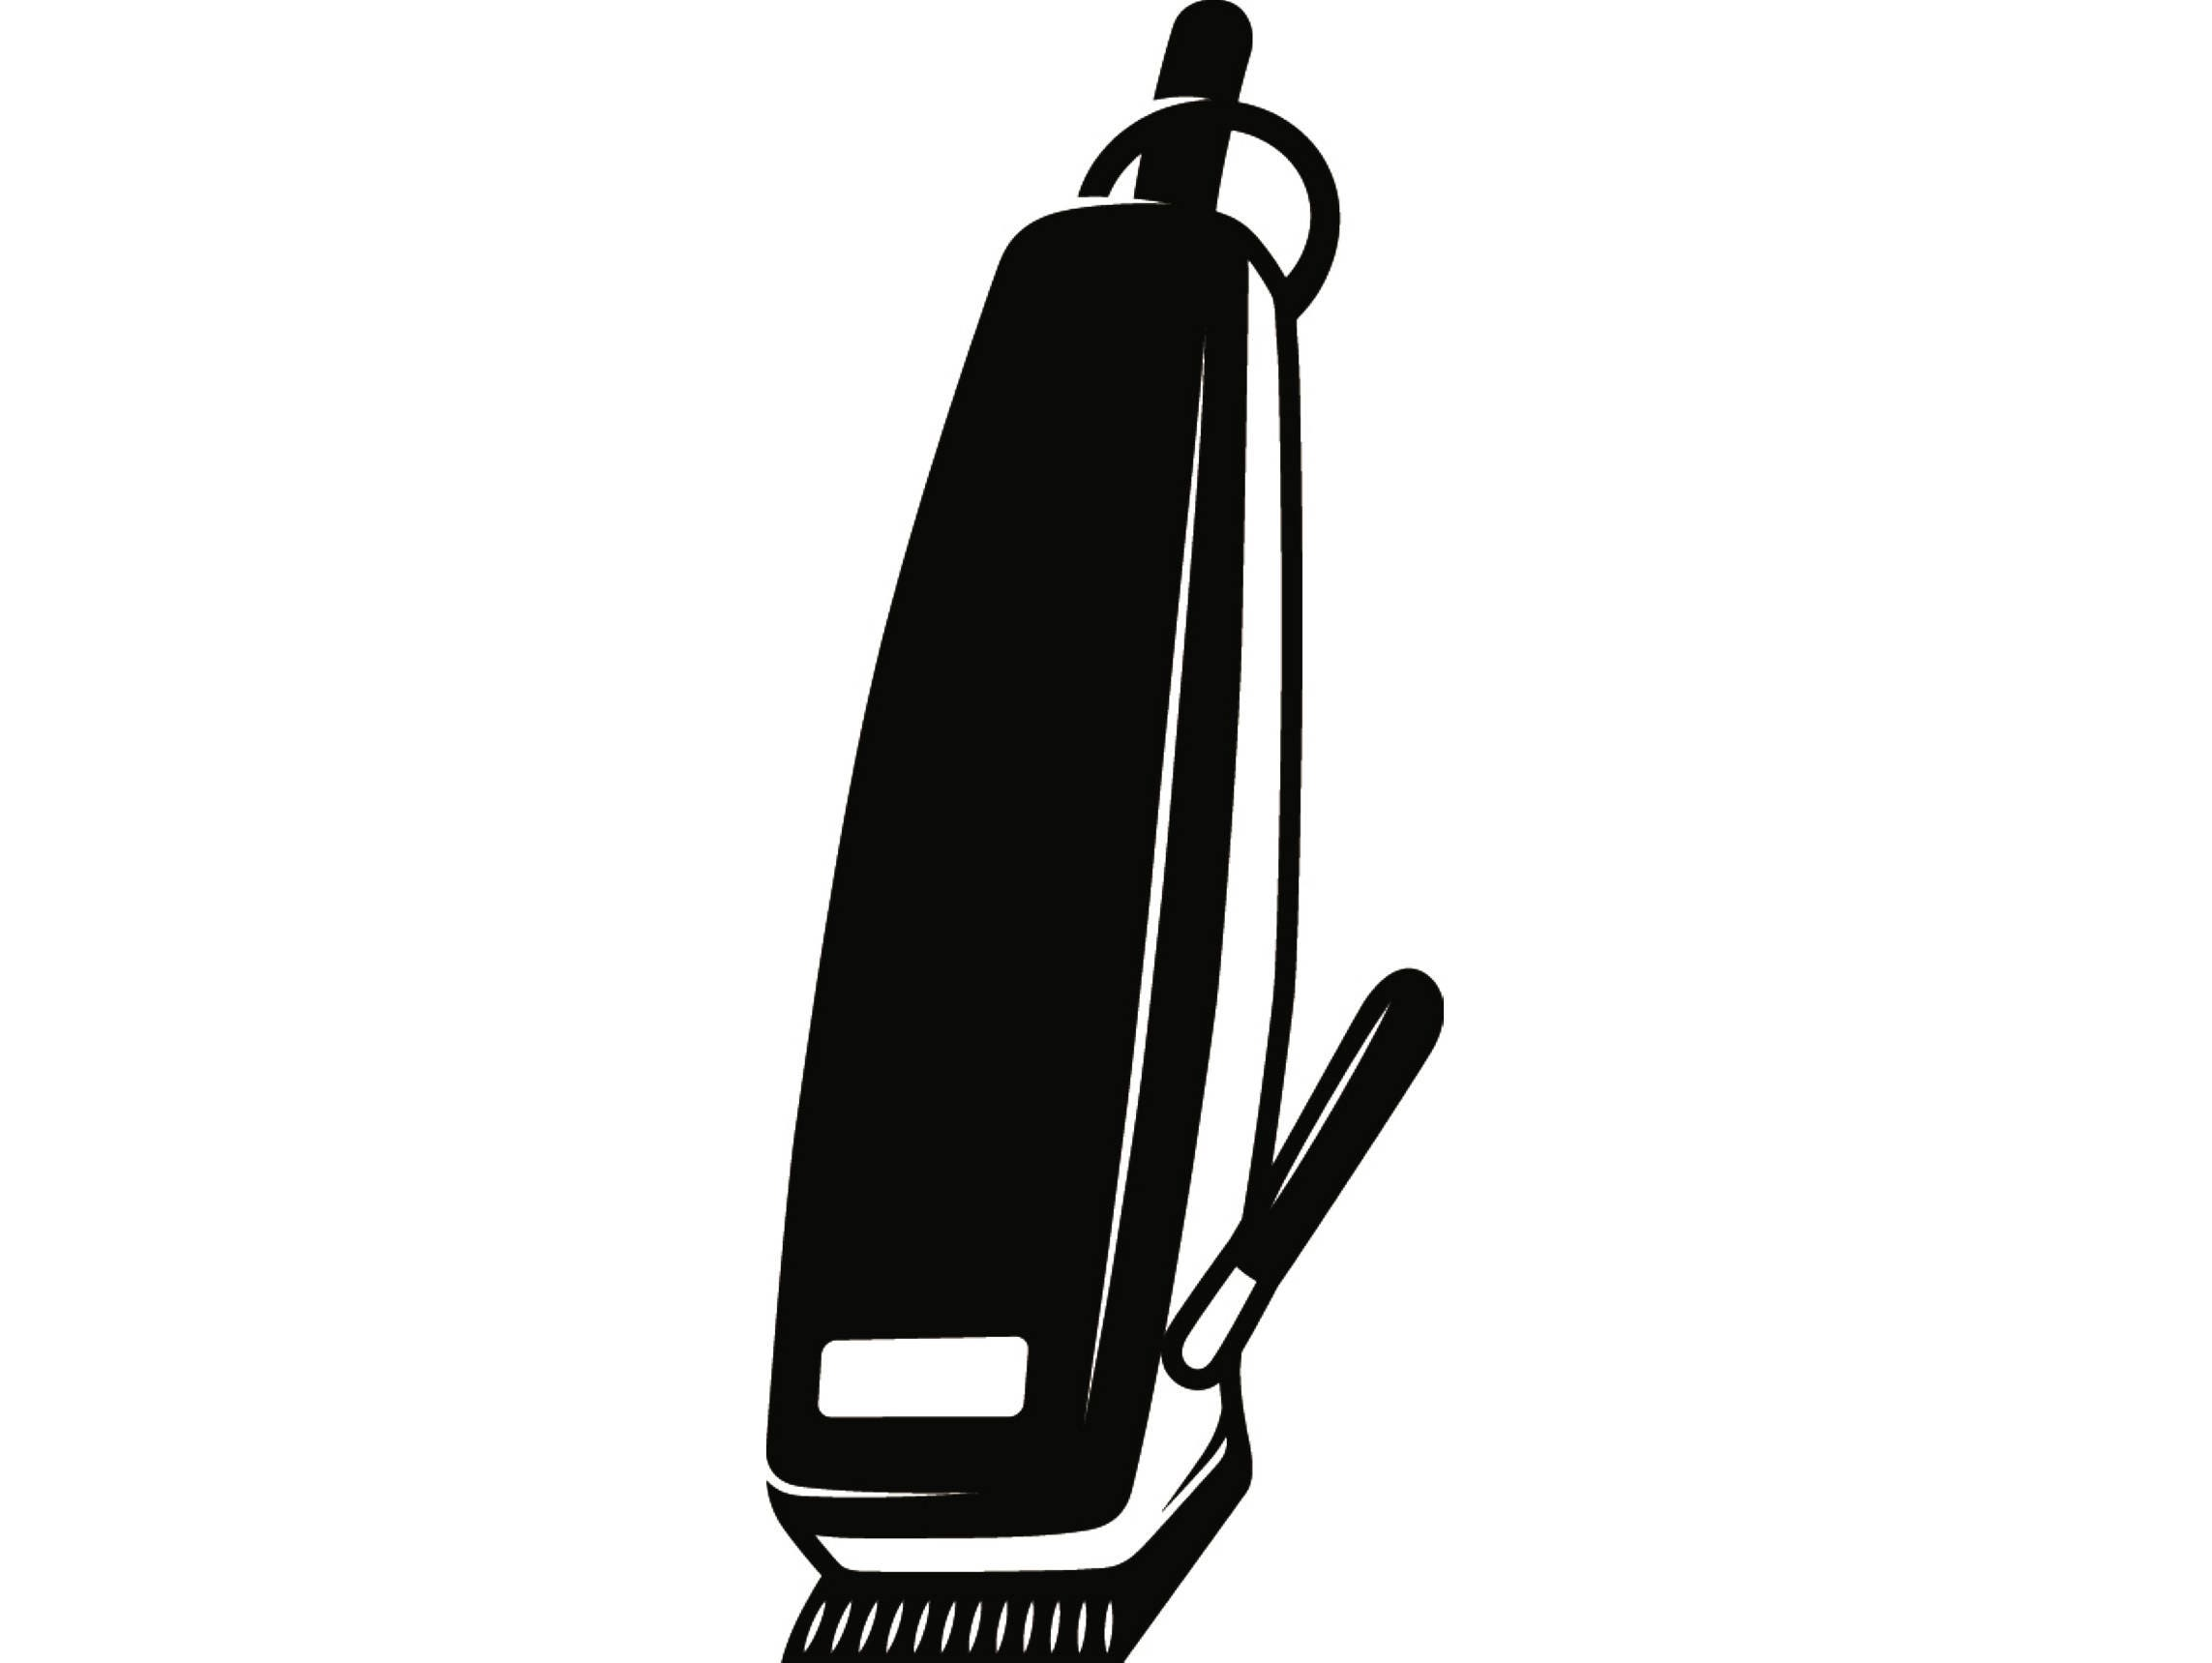 barber clippers svg - HD 2286×1719